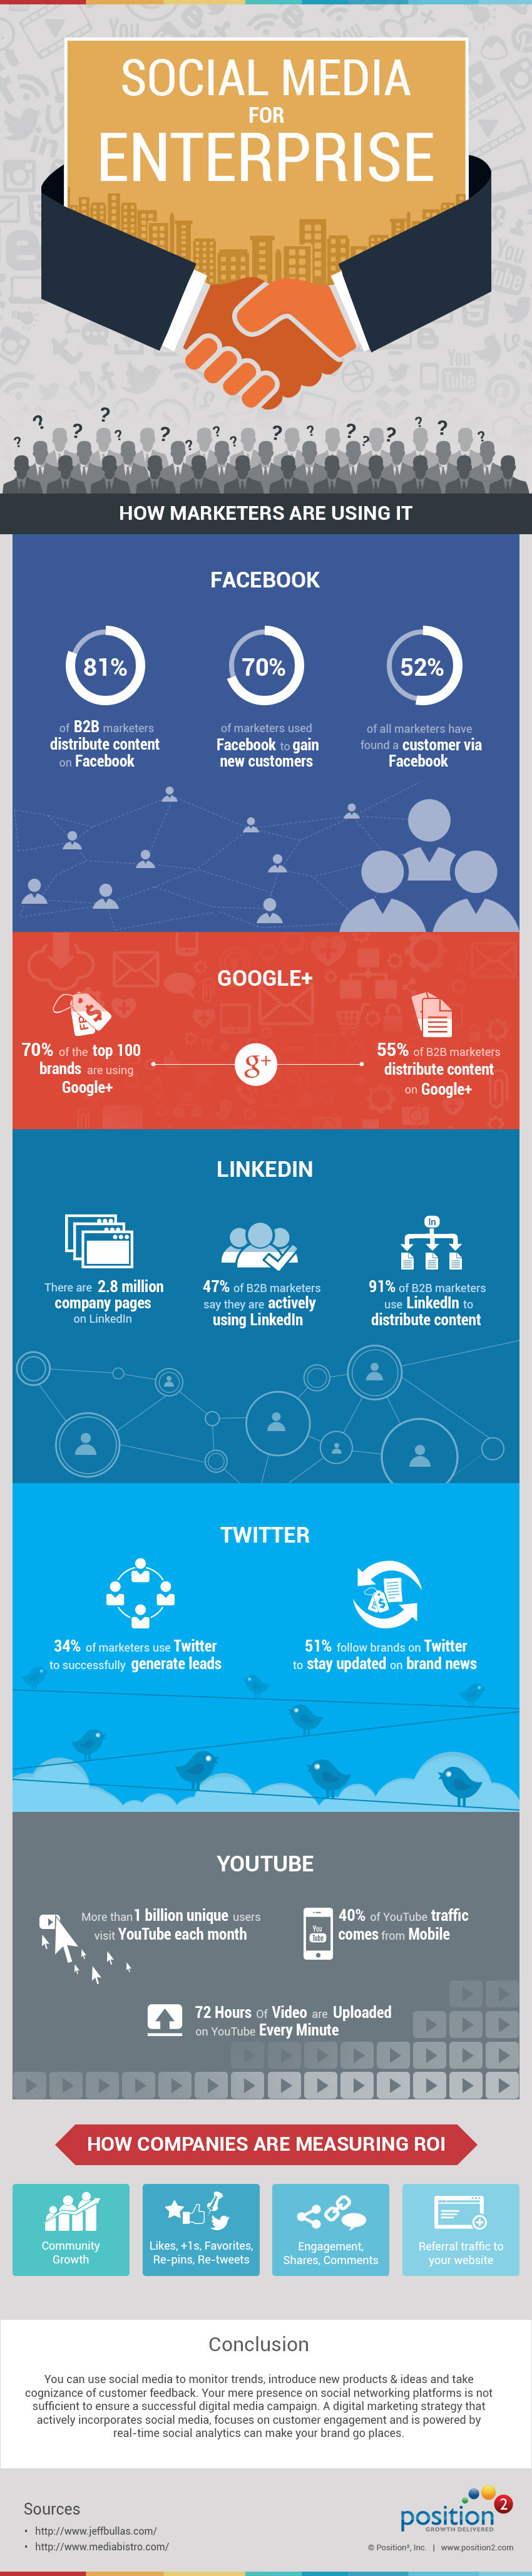 Facebook, Google+, Twitter, LinkedIn, YouTube - #SocialMedia for B2B Enterprise How compnaies are measnuring ROI - #infographic